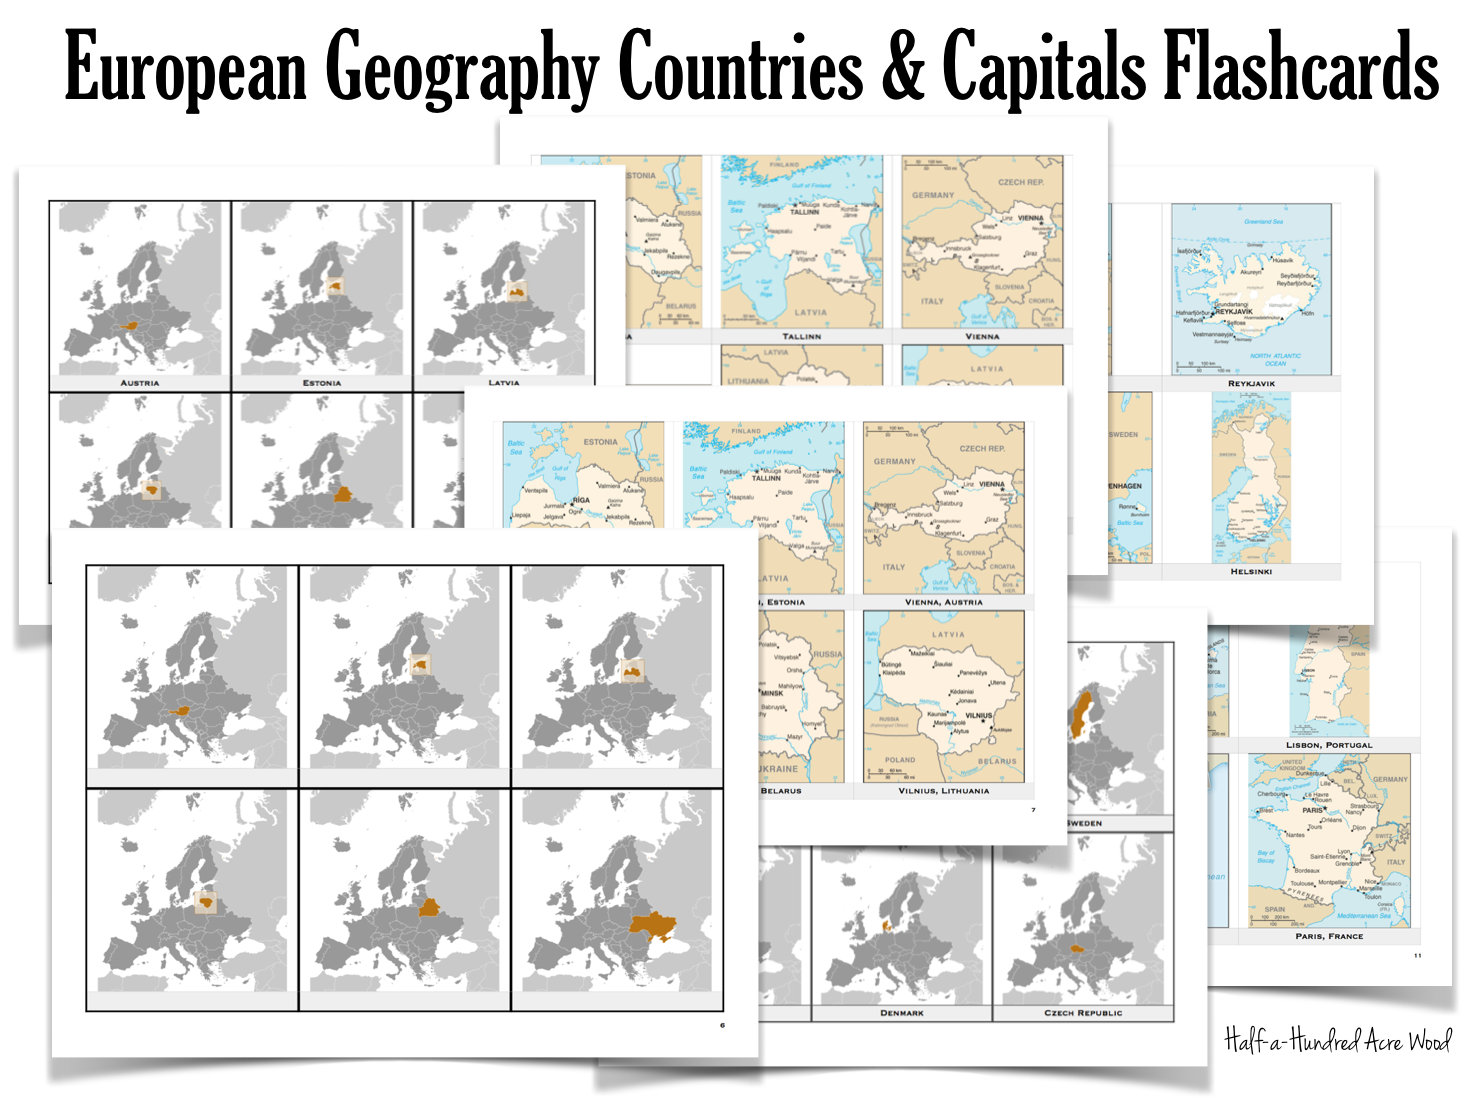 European countries capitals flashcards free printable for european countries capitals flashcards free printable for memorizing the countries and capitals of europe gamestrikefo Gallery